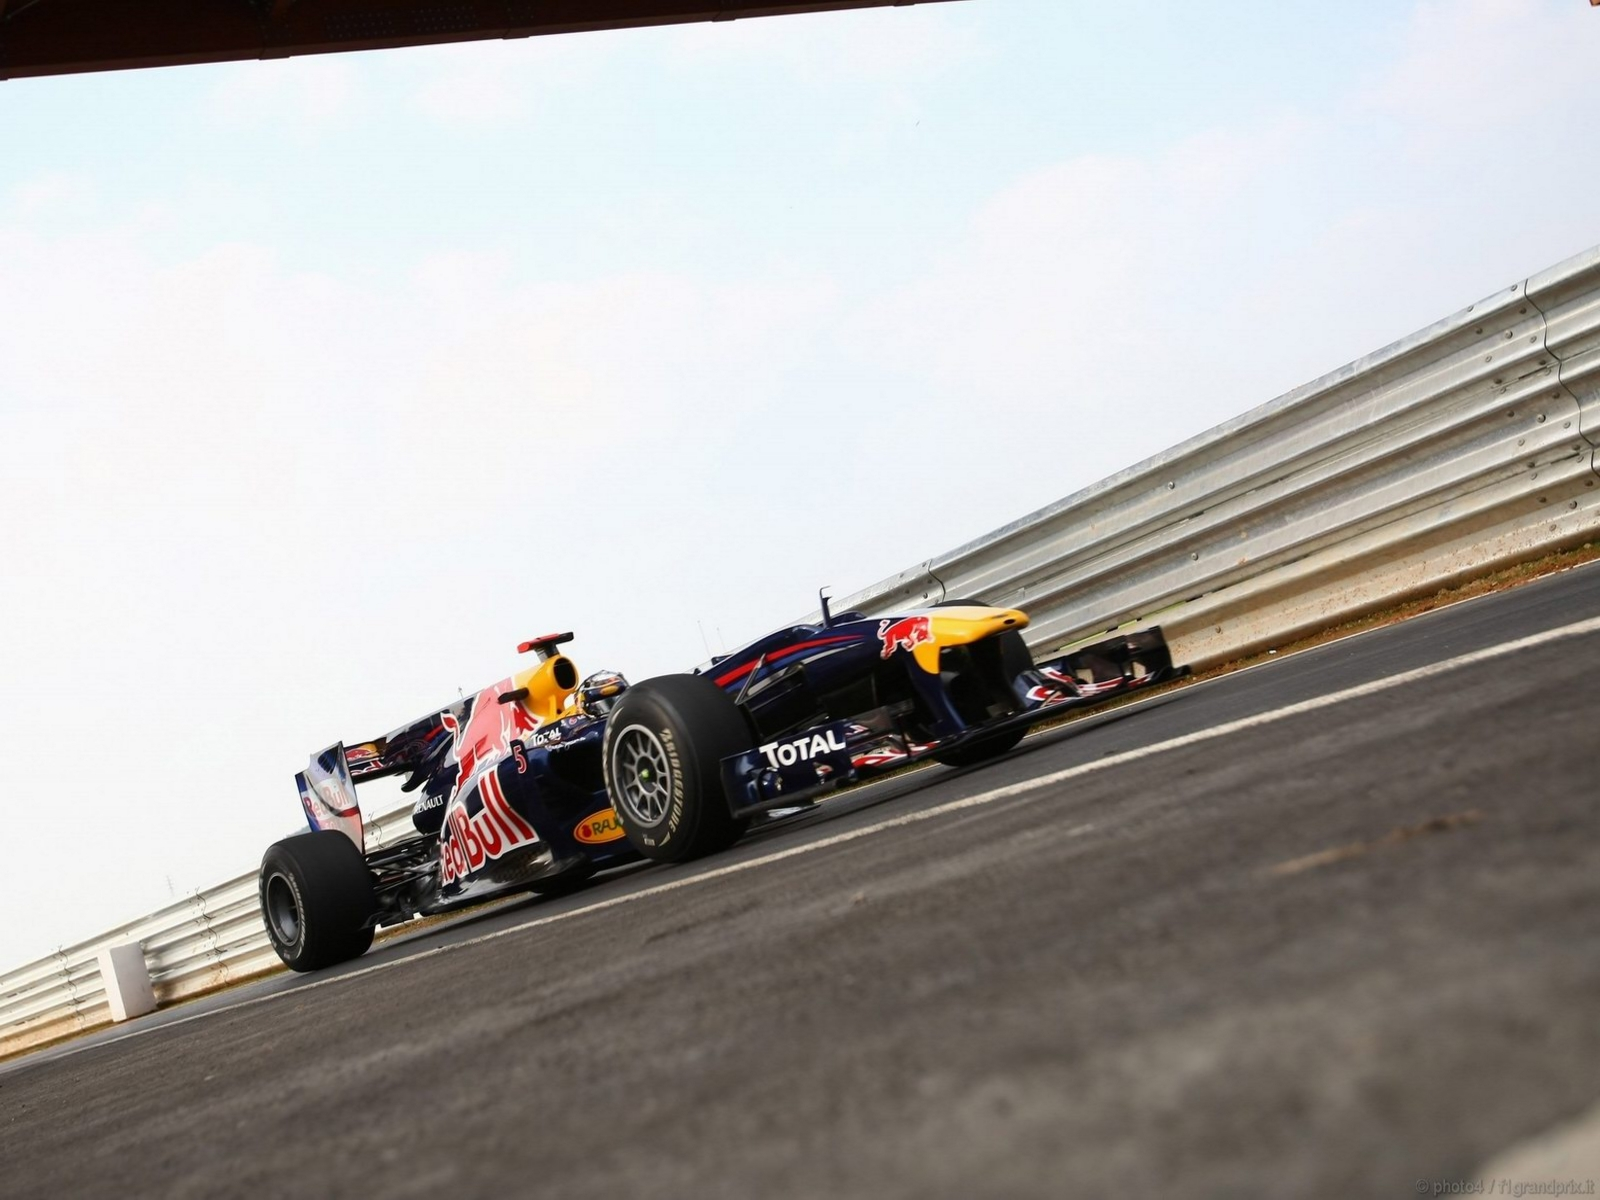 pojazdy - formula1 - gp_corea_wallpapers_000091